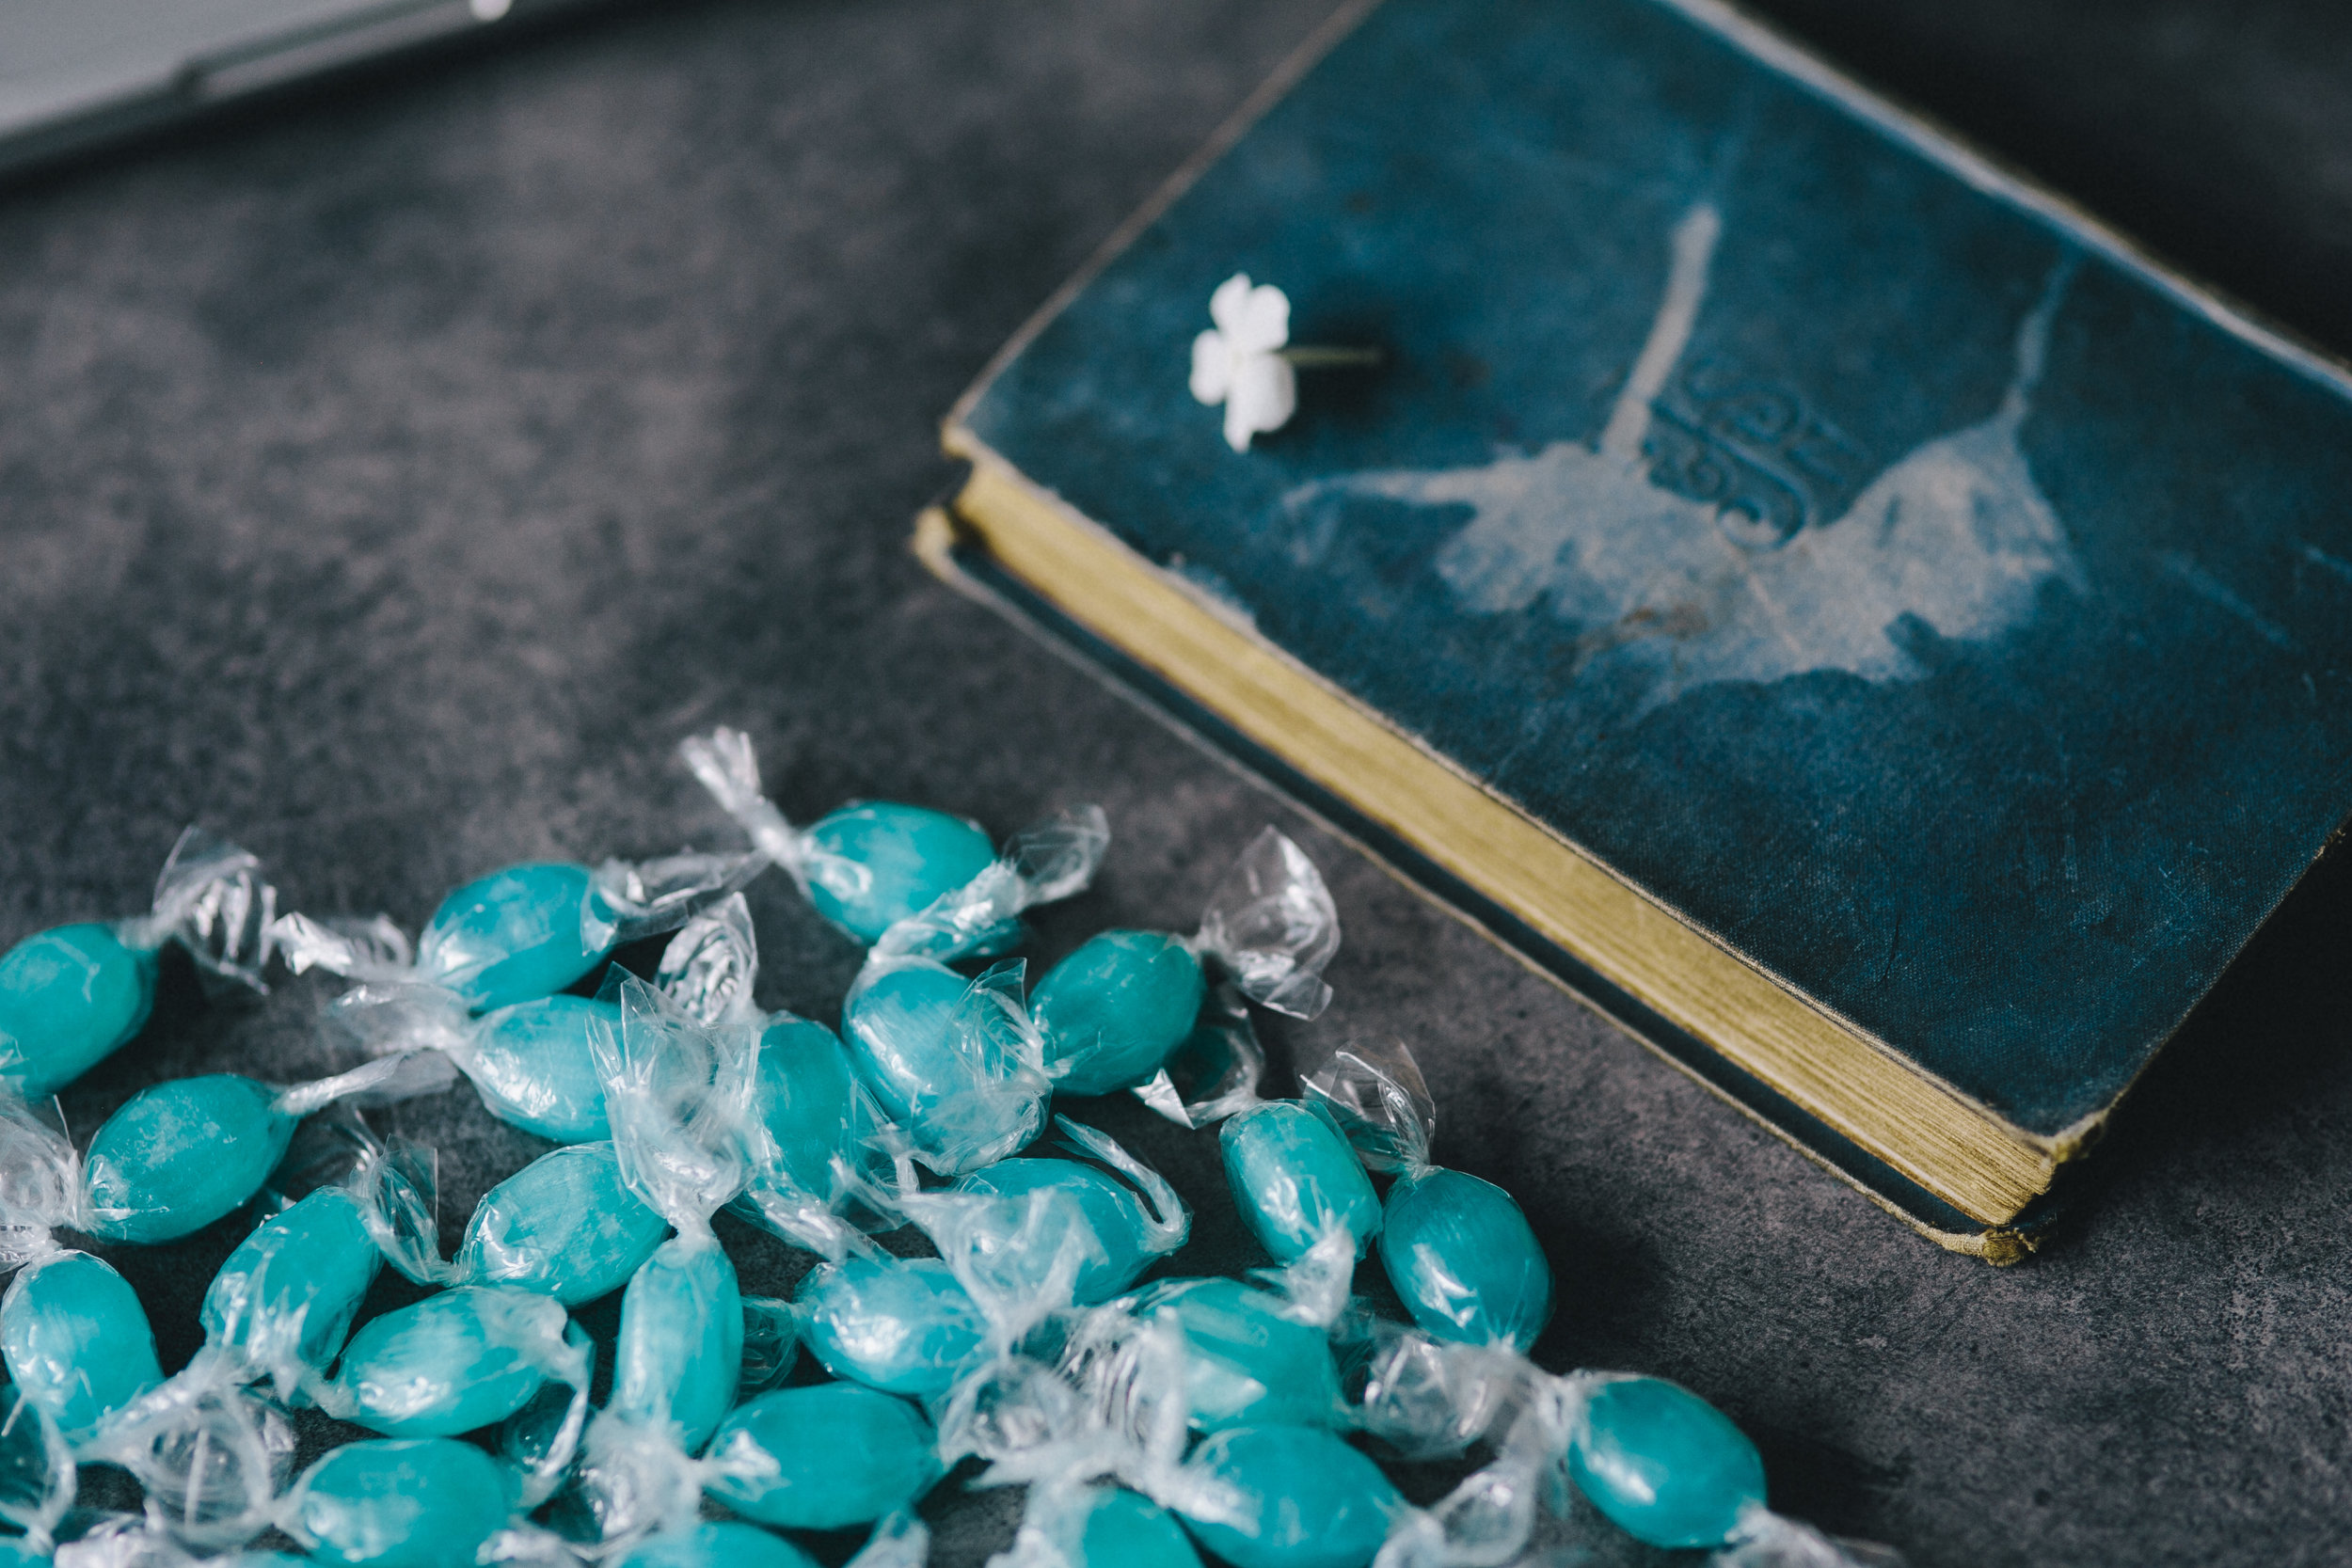 kaboompics_Book and blue candy.jpg